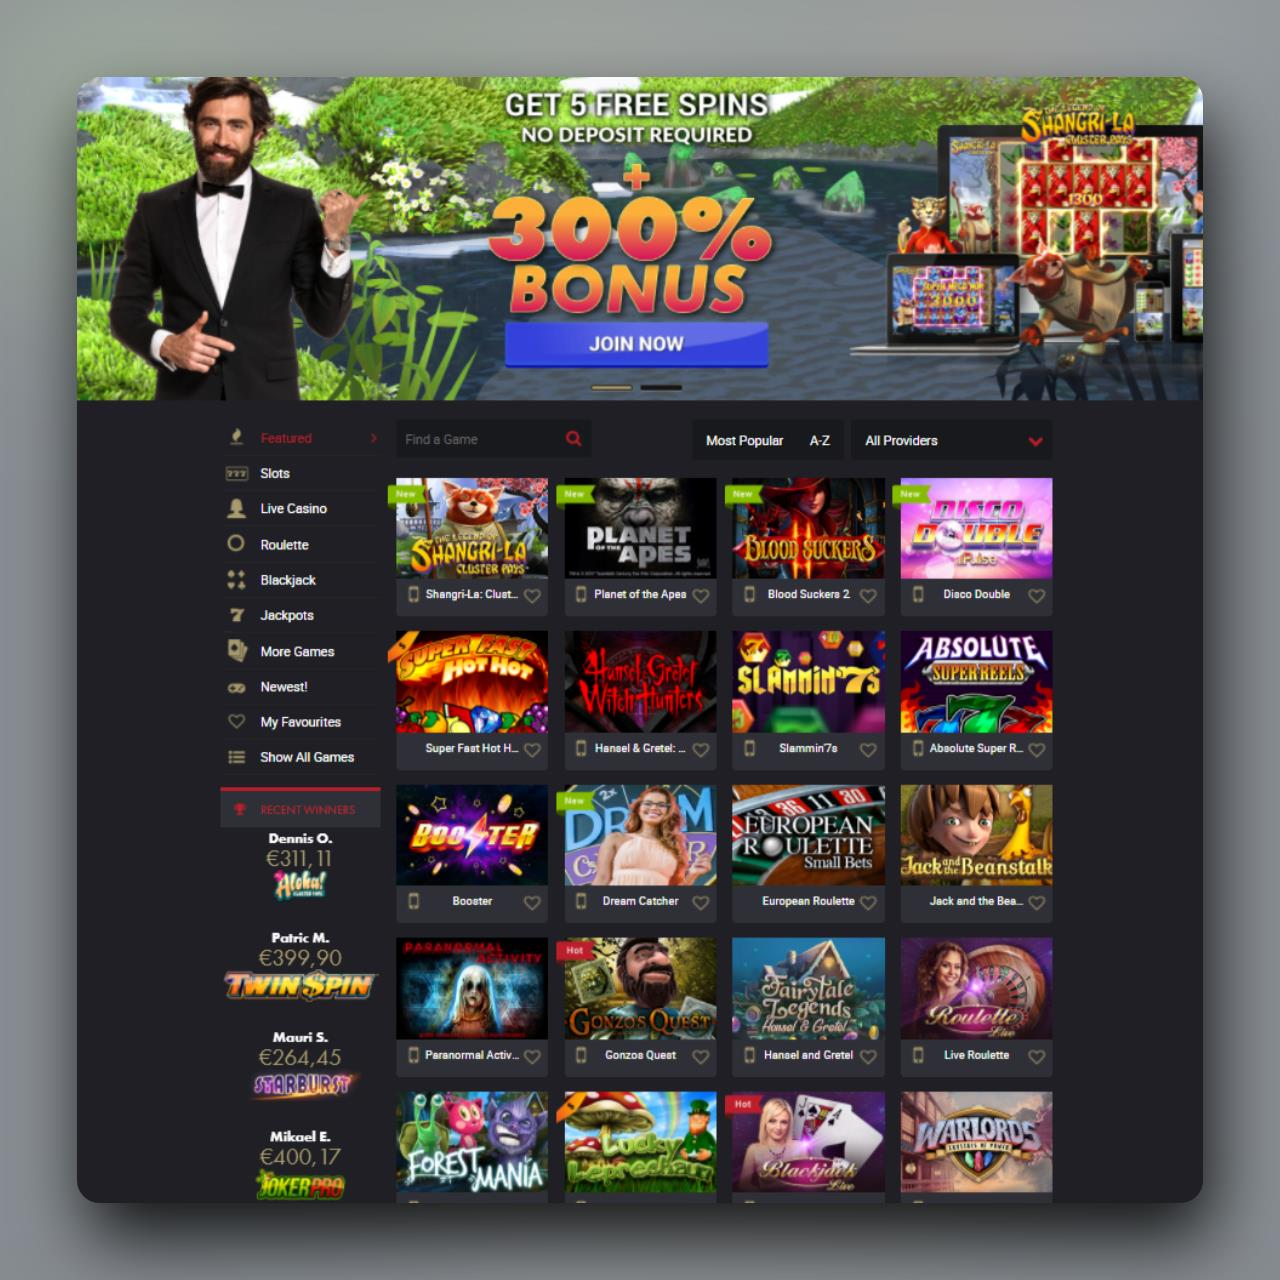 RoyRichie Casino review